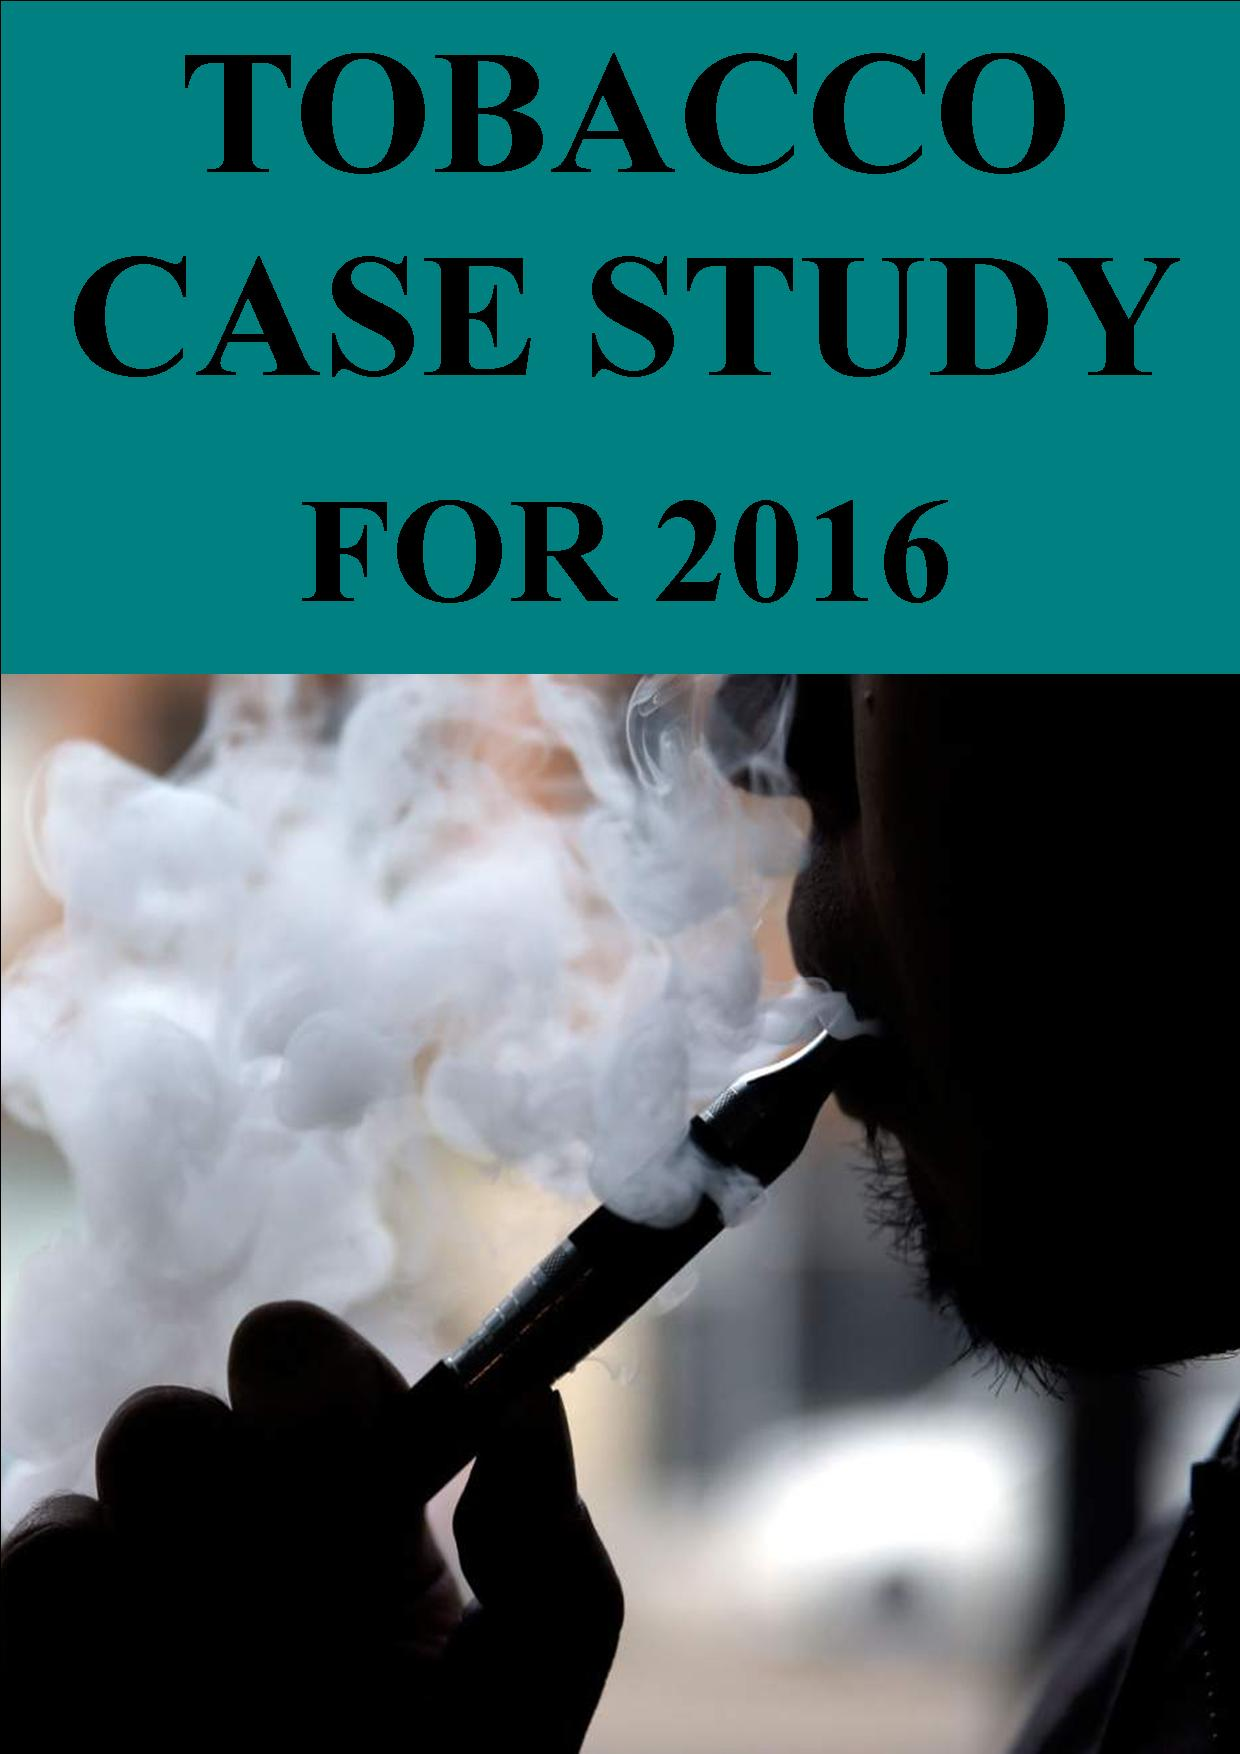 Unit 4b Tobacco Case Study for 2016